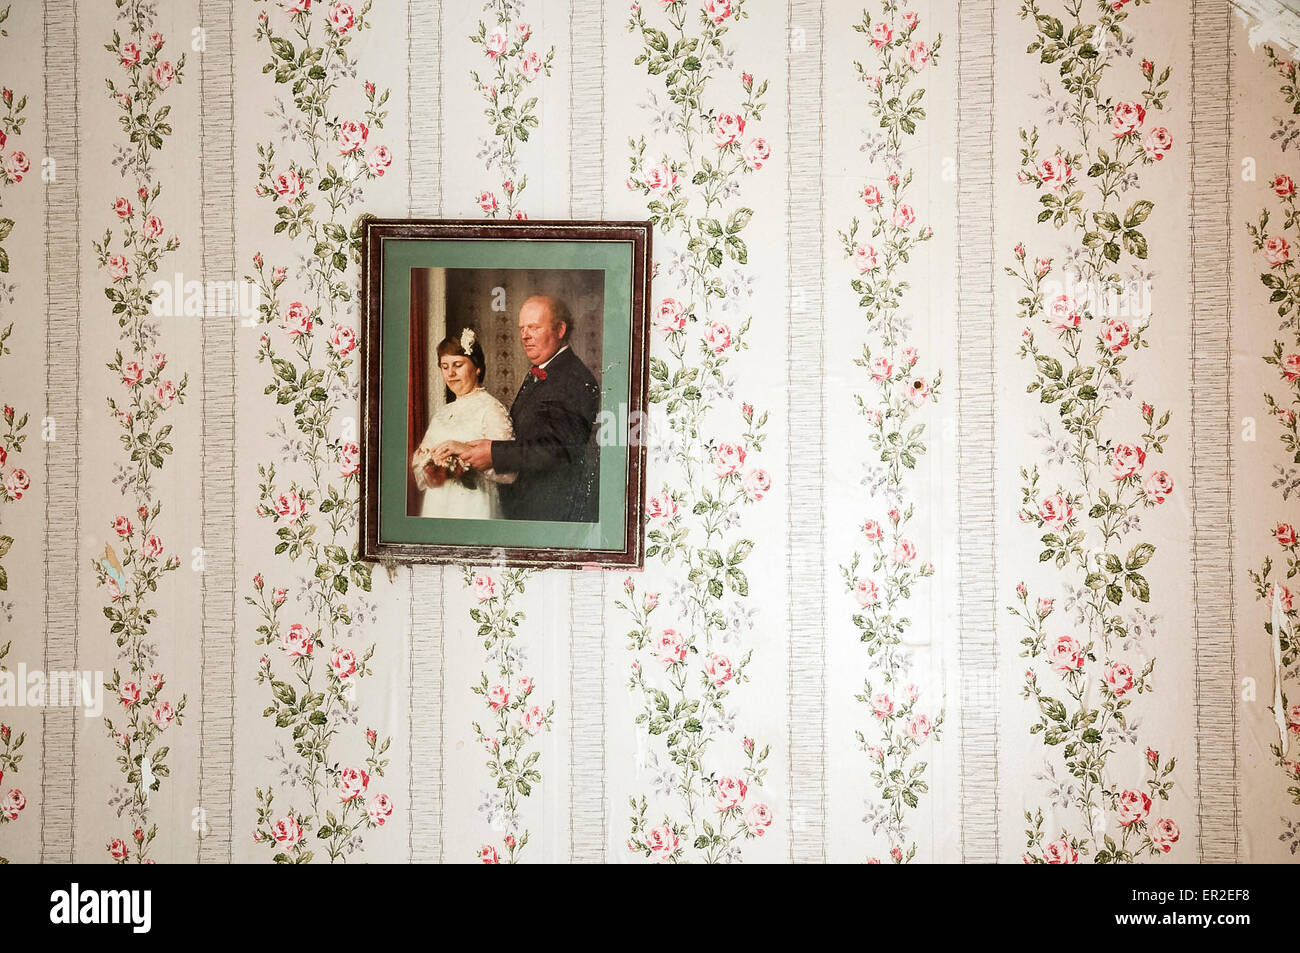 Wedding picture hanging on a wall with old fashioned floral wallpaper. - Stock Image